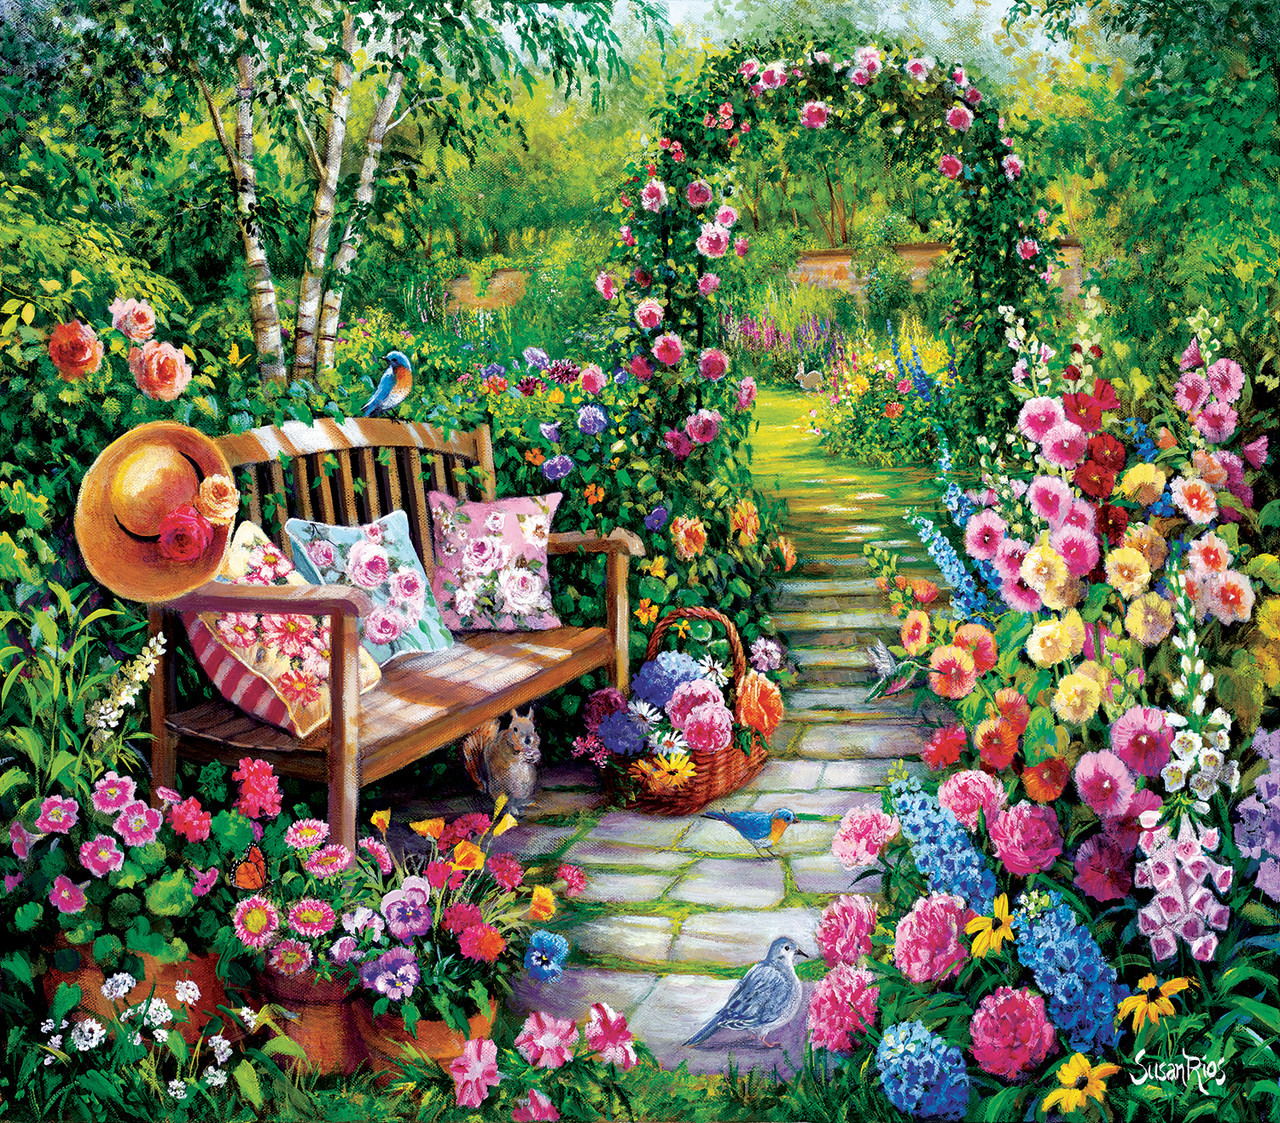 1000 Pieces Flowers And Birds Jigsaw Puzzle Tactic From the Garden